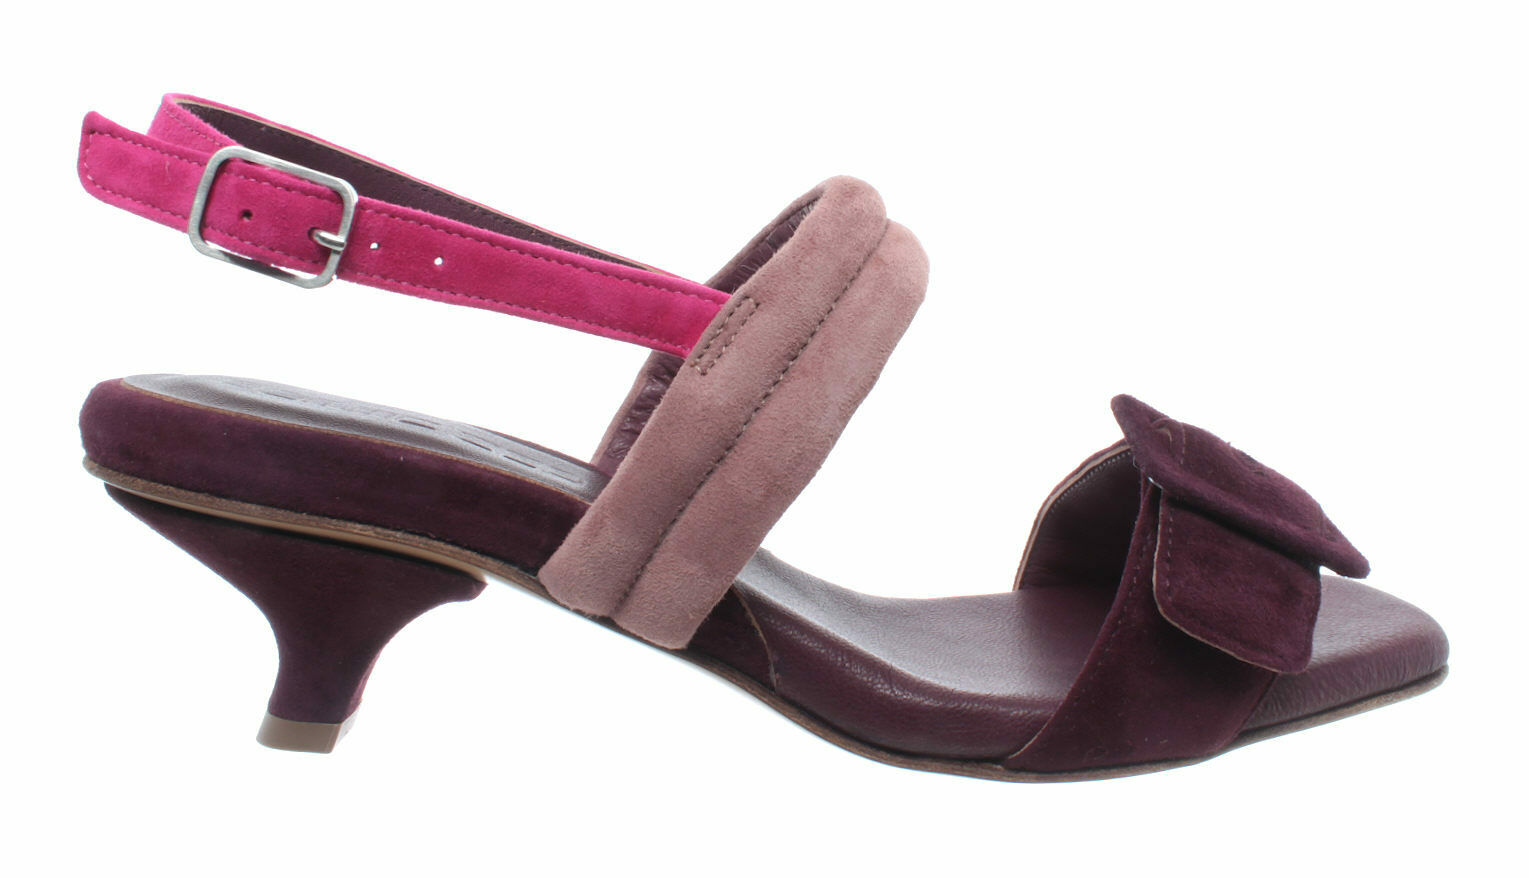 shoes Femme Sandales Talons POMME D'OR 4481A Camoscio Bordo' Chamois